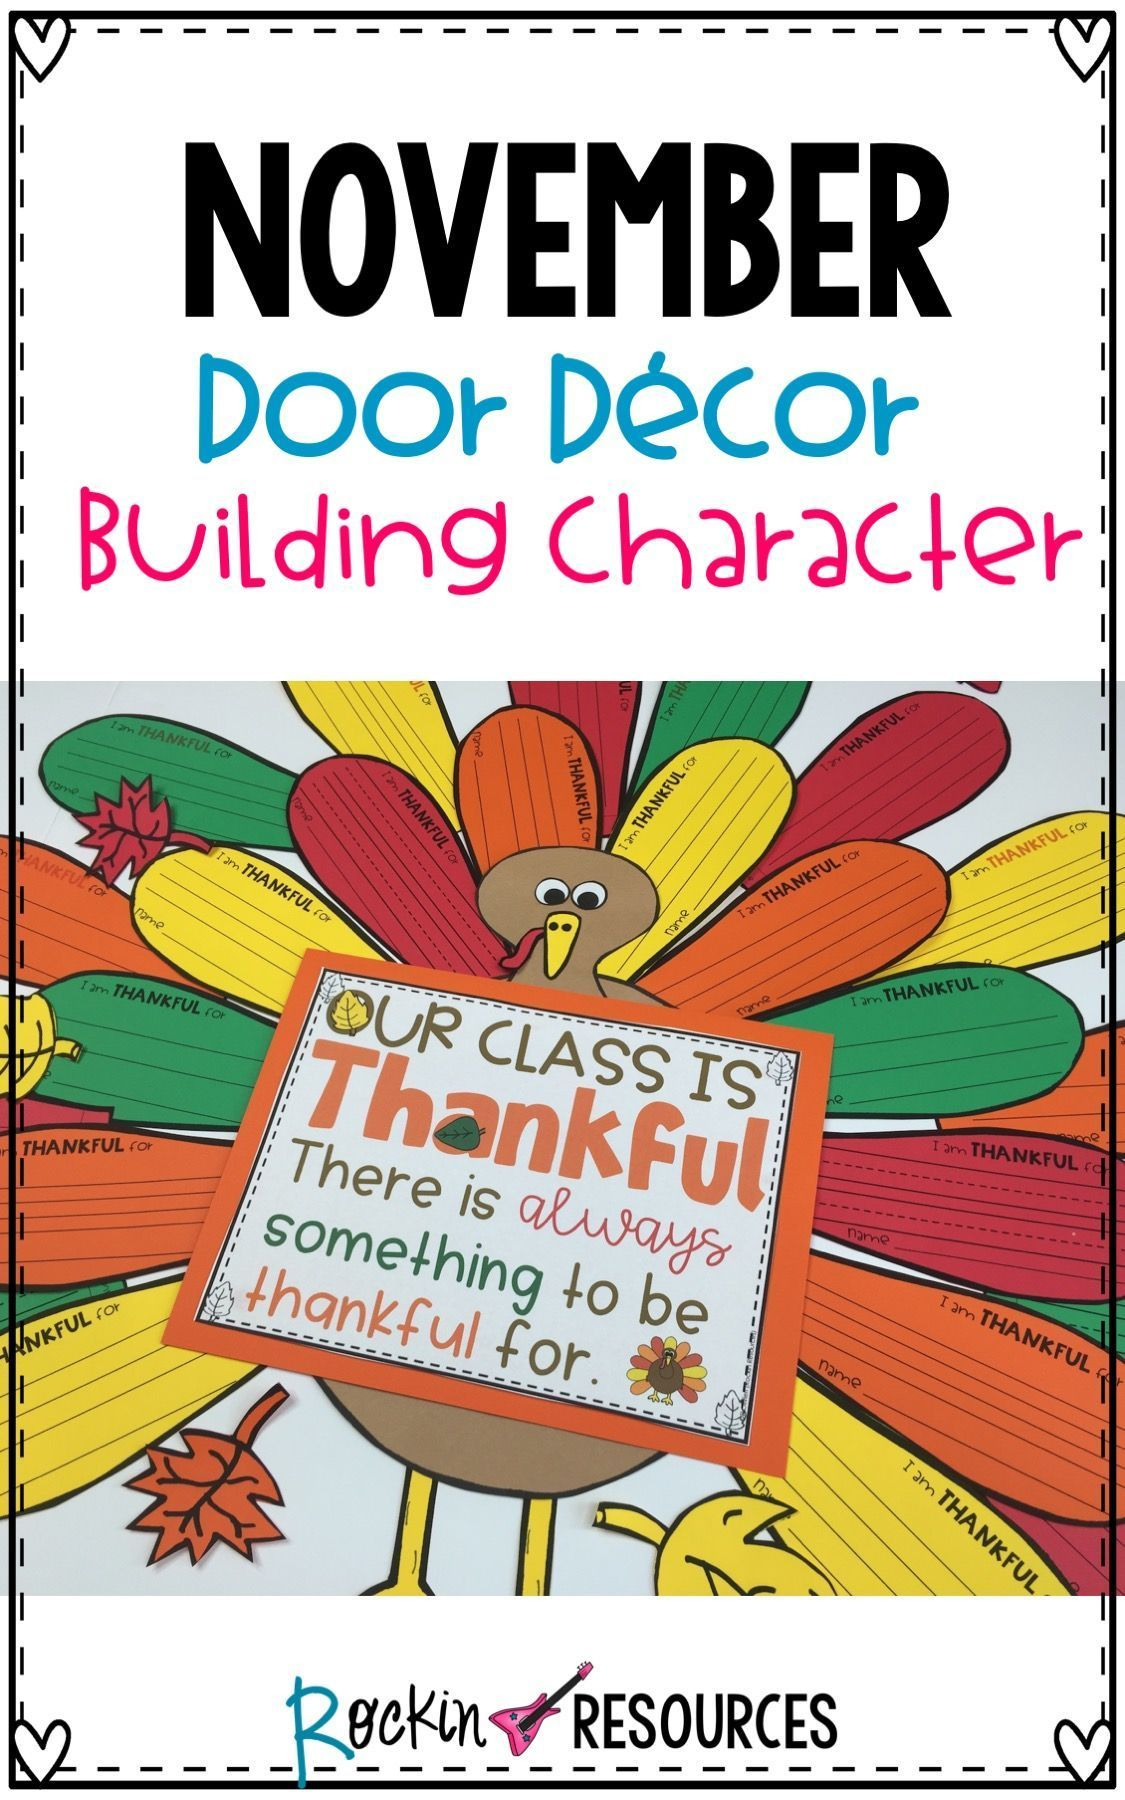 November Bulletin Board Thankful Door Decor Thanksgiving Bulletin Board #novemberbulletinboards This November door decor also makes a great Thanksgiving bulletin board and Thanksgiving activity with your class. Build good character! #novemberbulletinboards November Bulletin Board Thankful Door Decor Thanksgiving Bulletin Board #novemberbulletinboards This November door decor also makes a great Thanksgiving bulletin board and Thanksgiving activity with your class. Build good character! #novemberbulletinboards